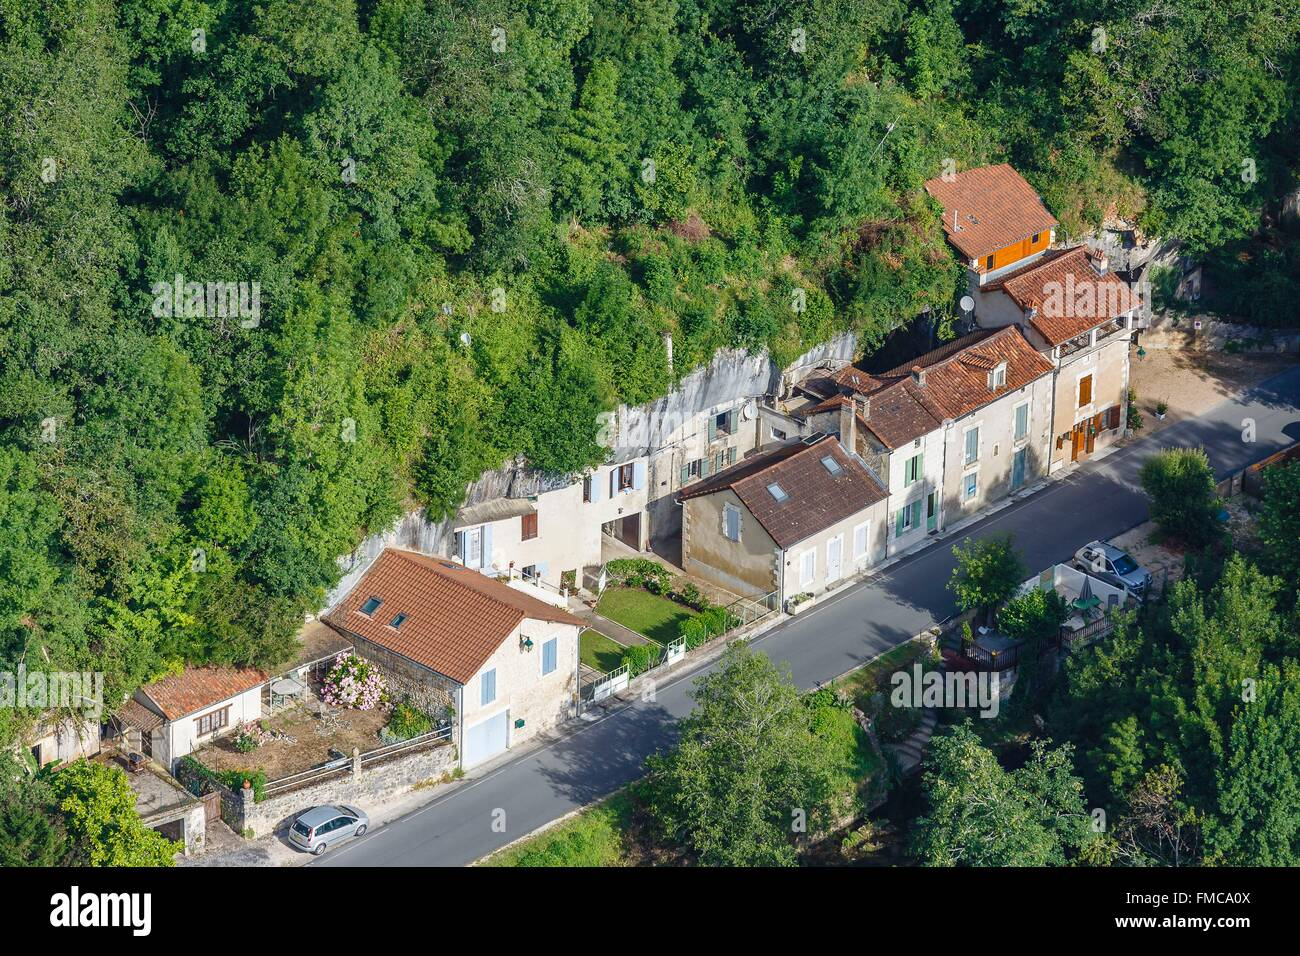 France, Dordogne, Brantome, cave dwellings (aerial view) - Stock Image